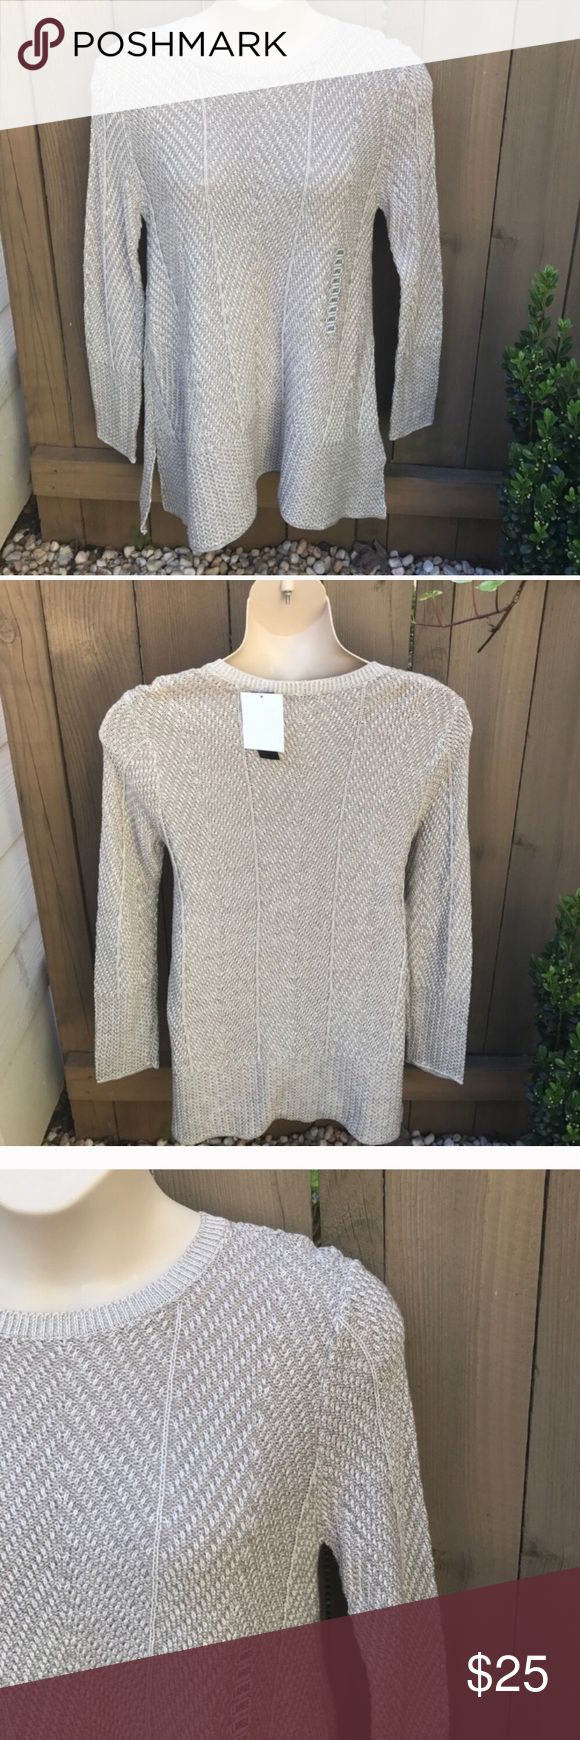 Eight Eight Eight beige sweater NWT size L NWT size L Eight Eight Eight beige sweater: BLACK BIN 6 Eight Eight Eight Sweaters